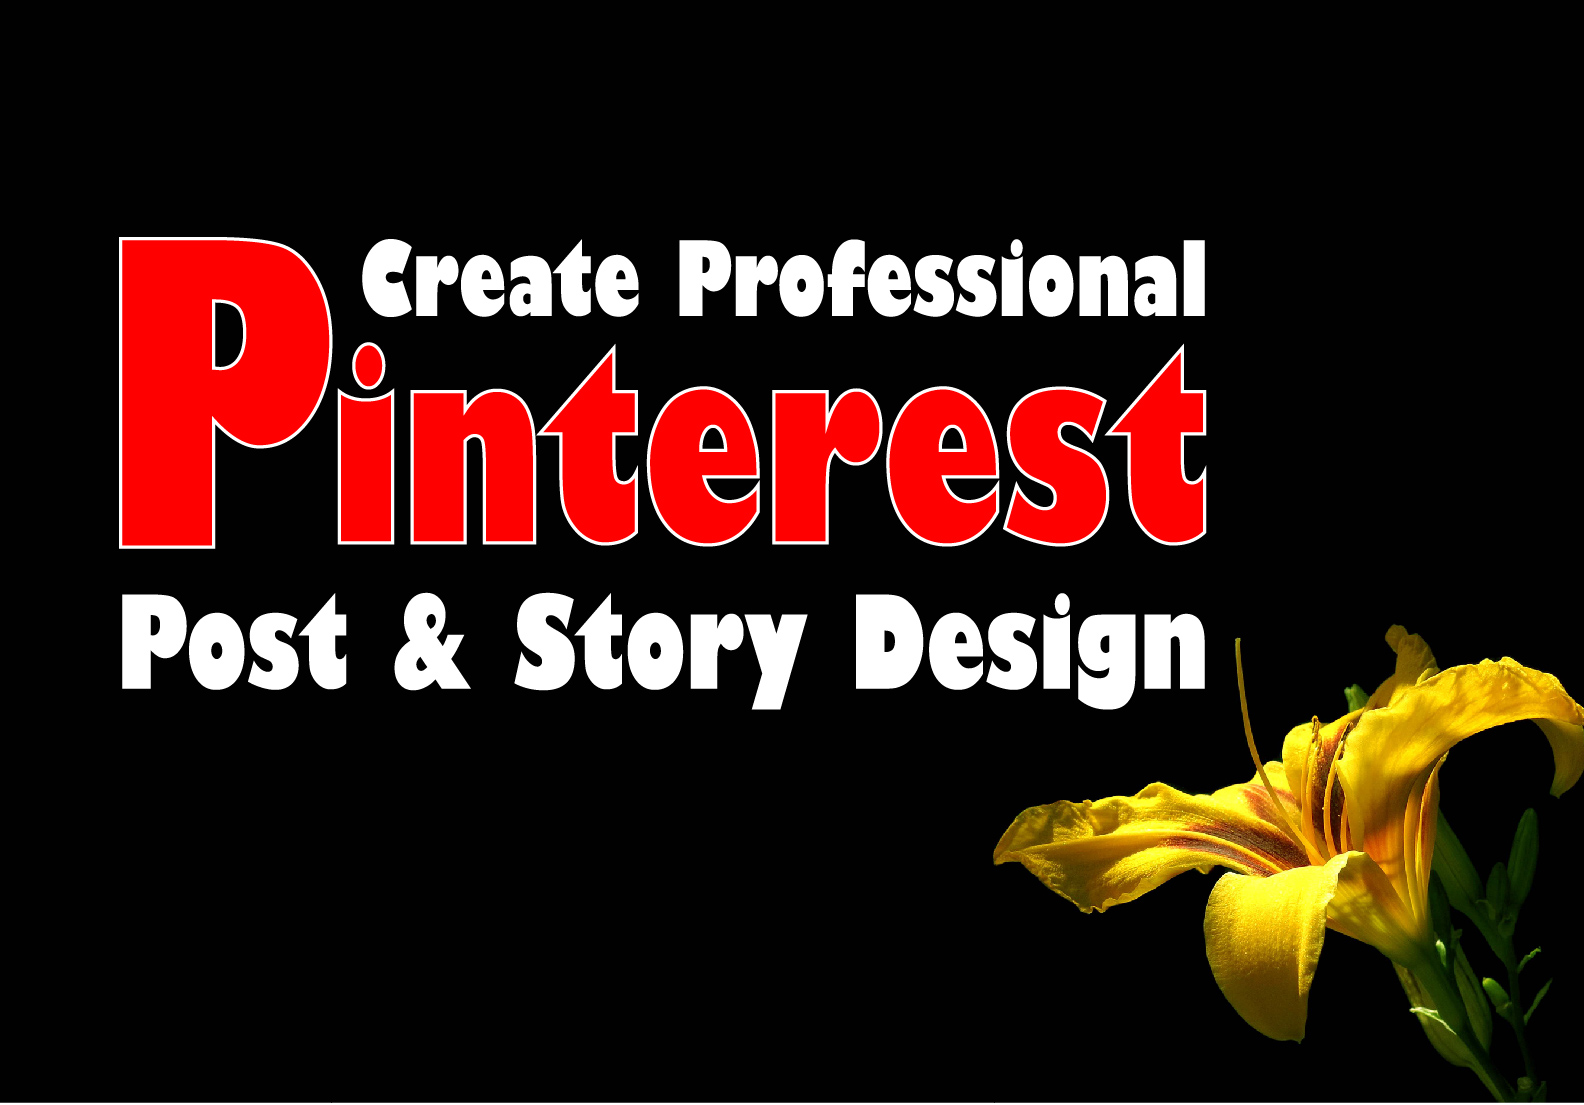 I will create professional Pinterest Post & Story Design